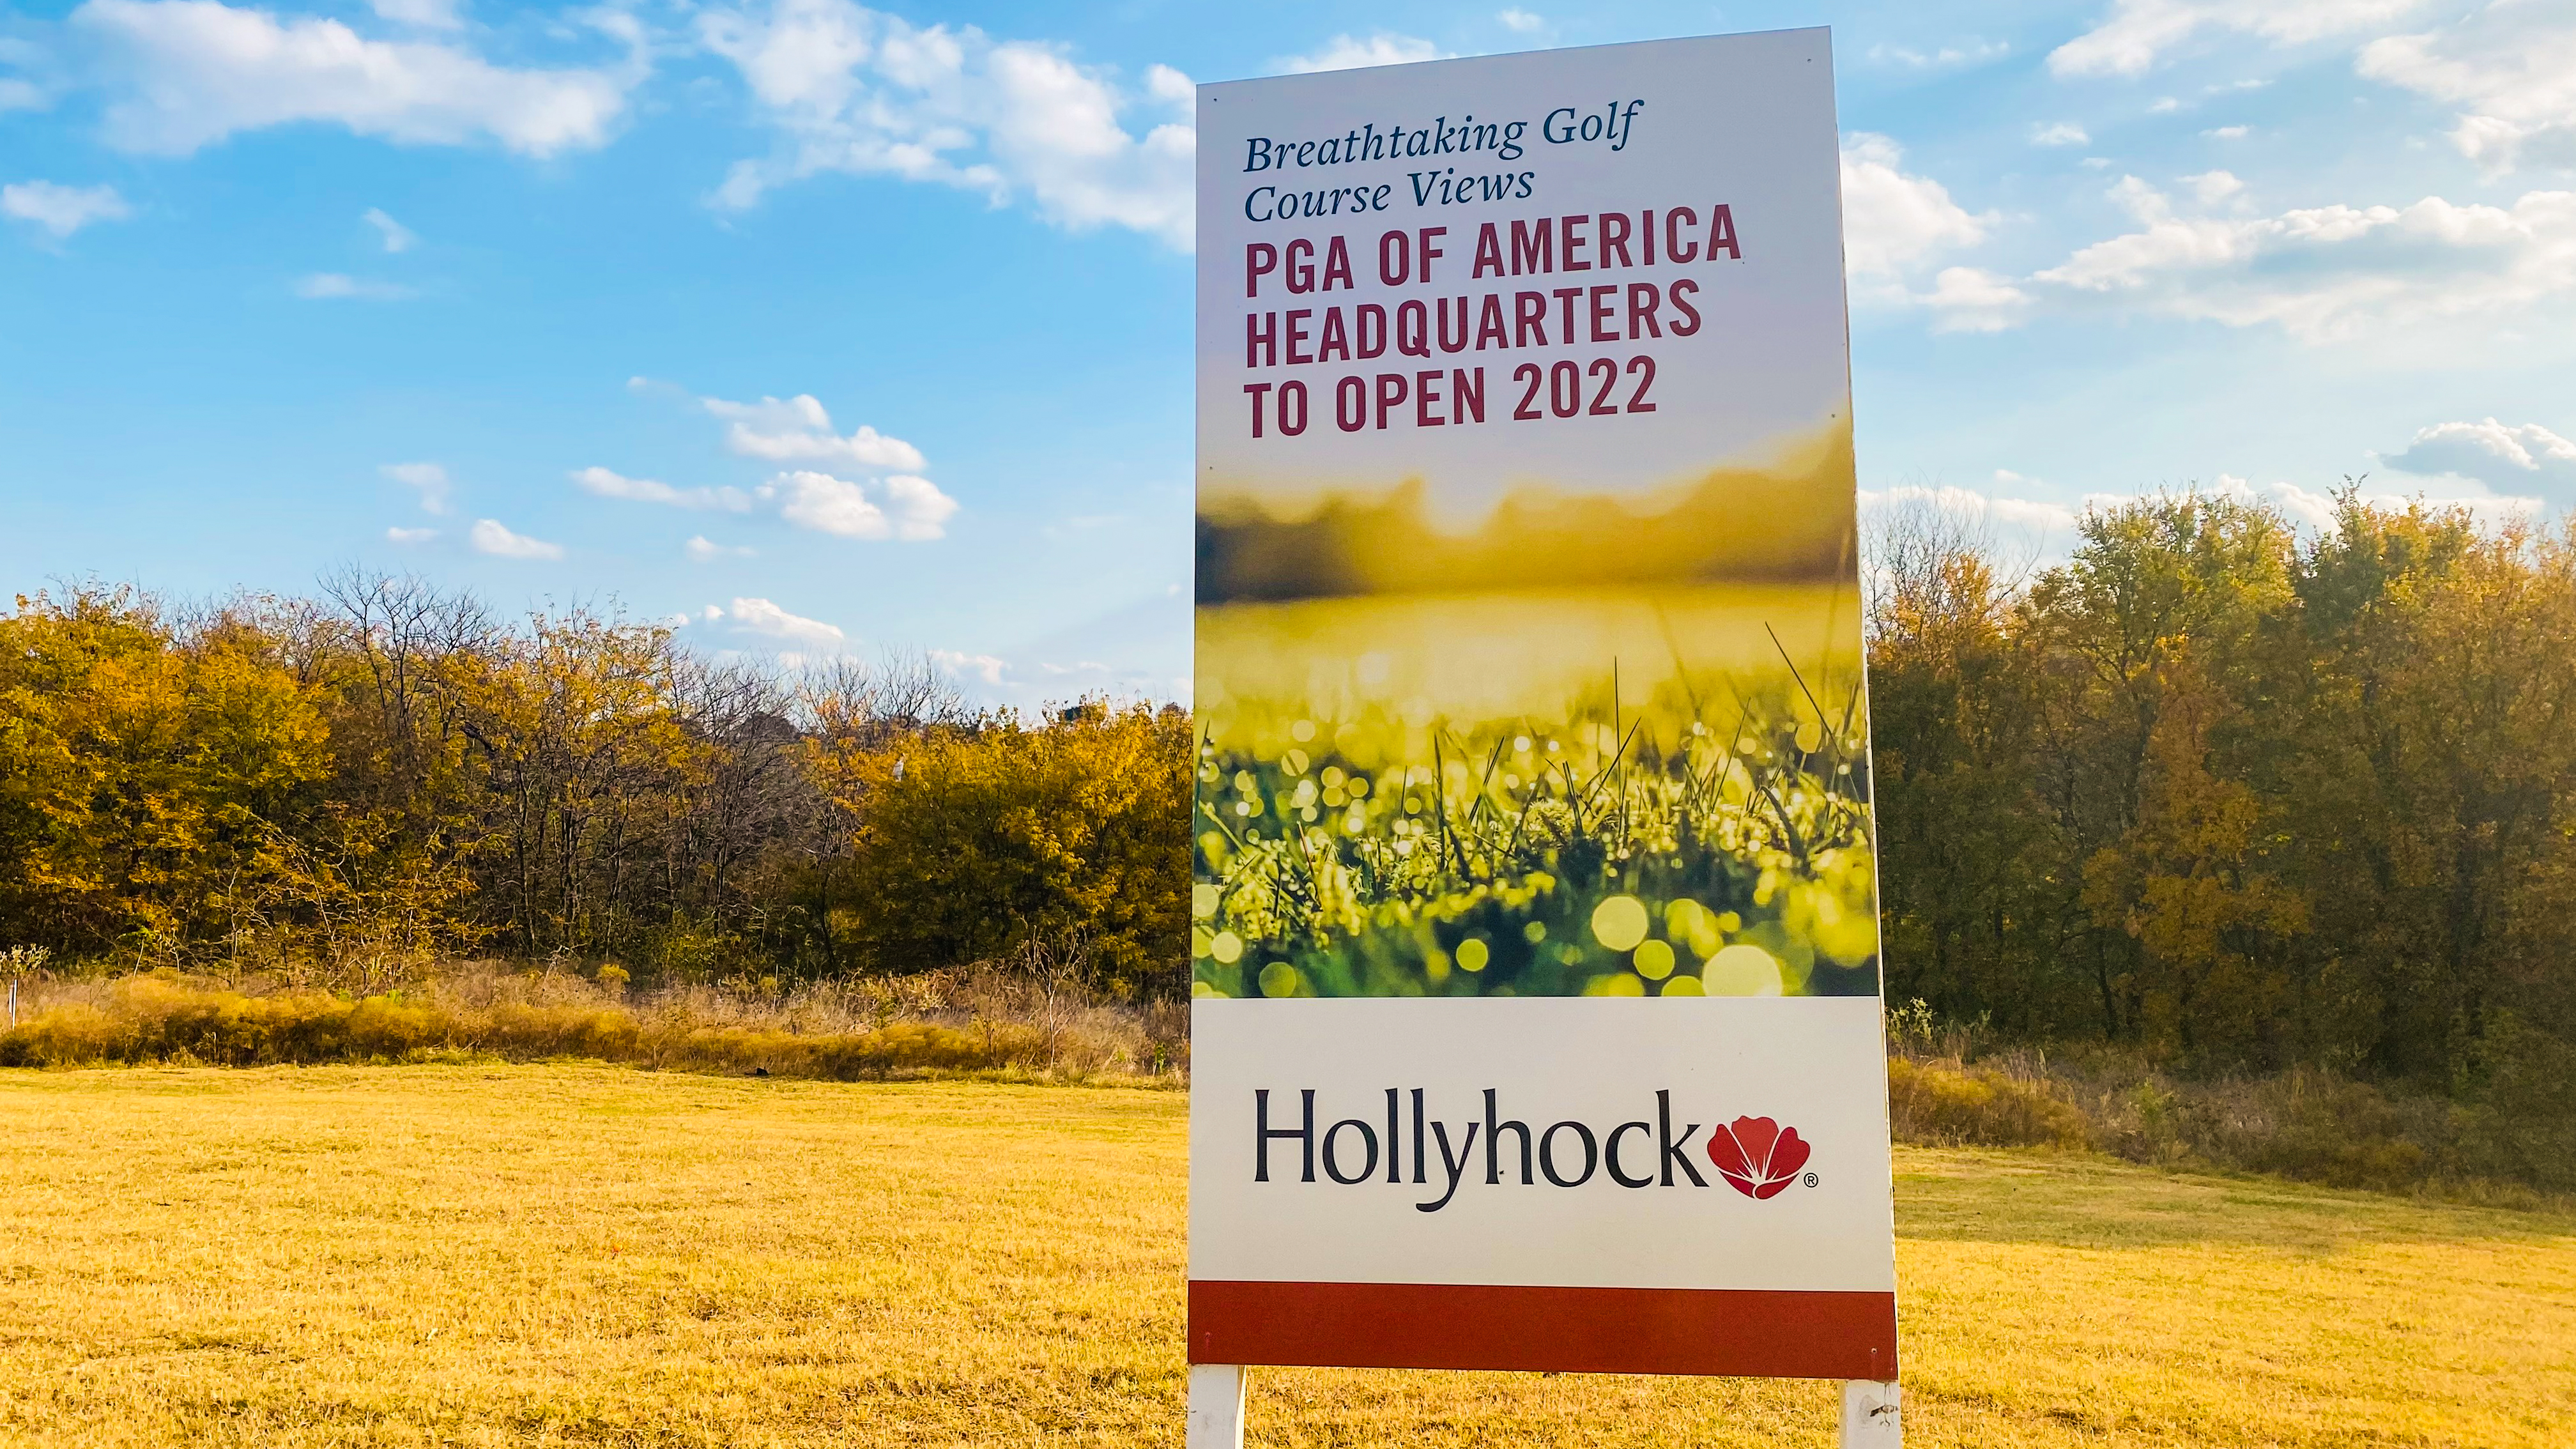 Houses for Sale in Hollyhock Frisco TX